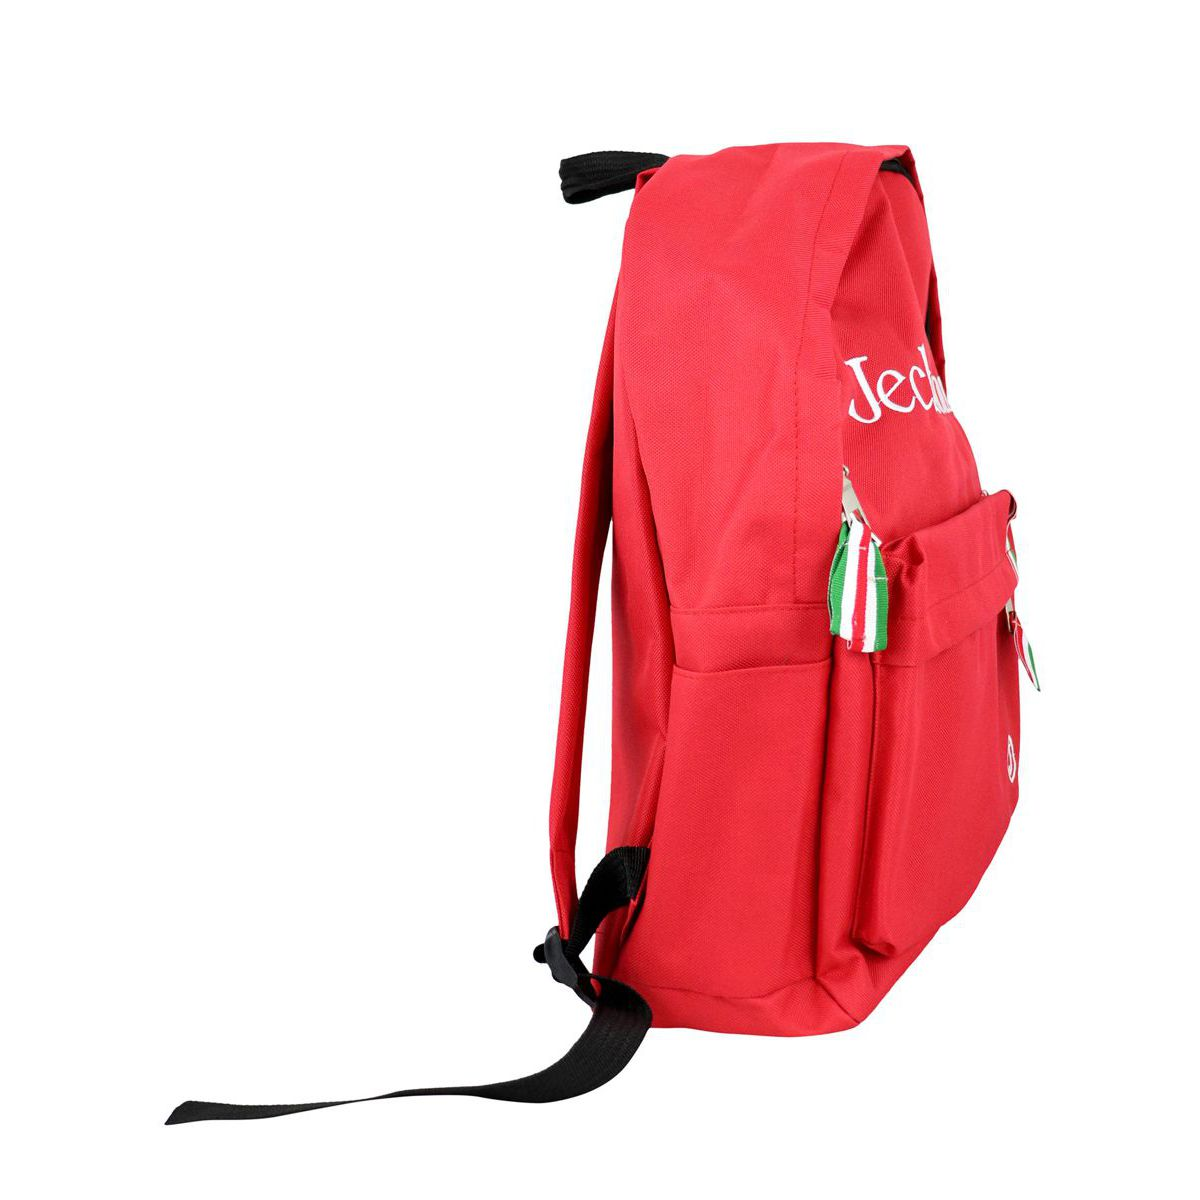 Backpack with front logo and Italian flag Red Jeckerson